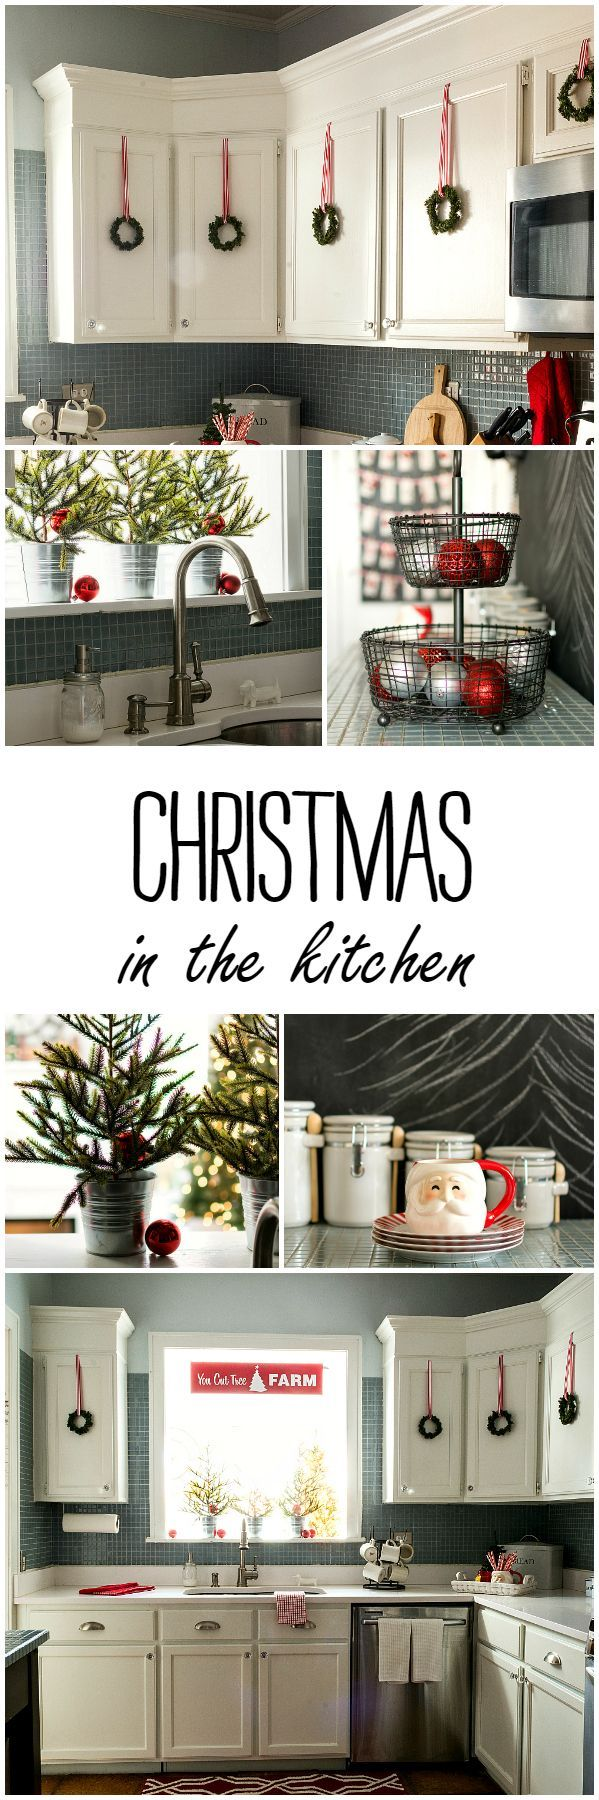 Christmas Decorating Ideas Kitchen Island : Best ideas about christmas kitchen on